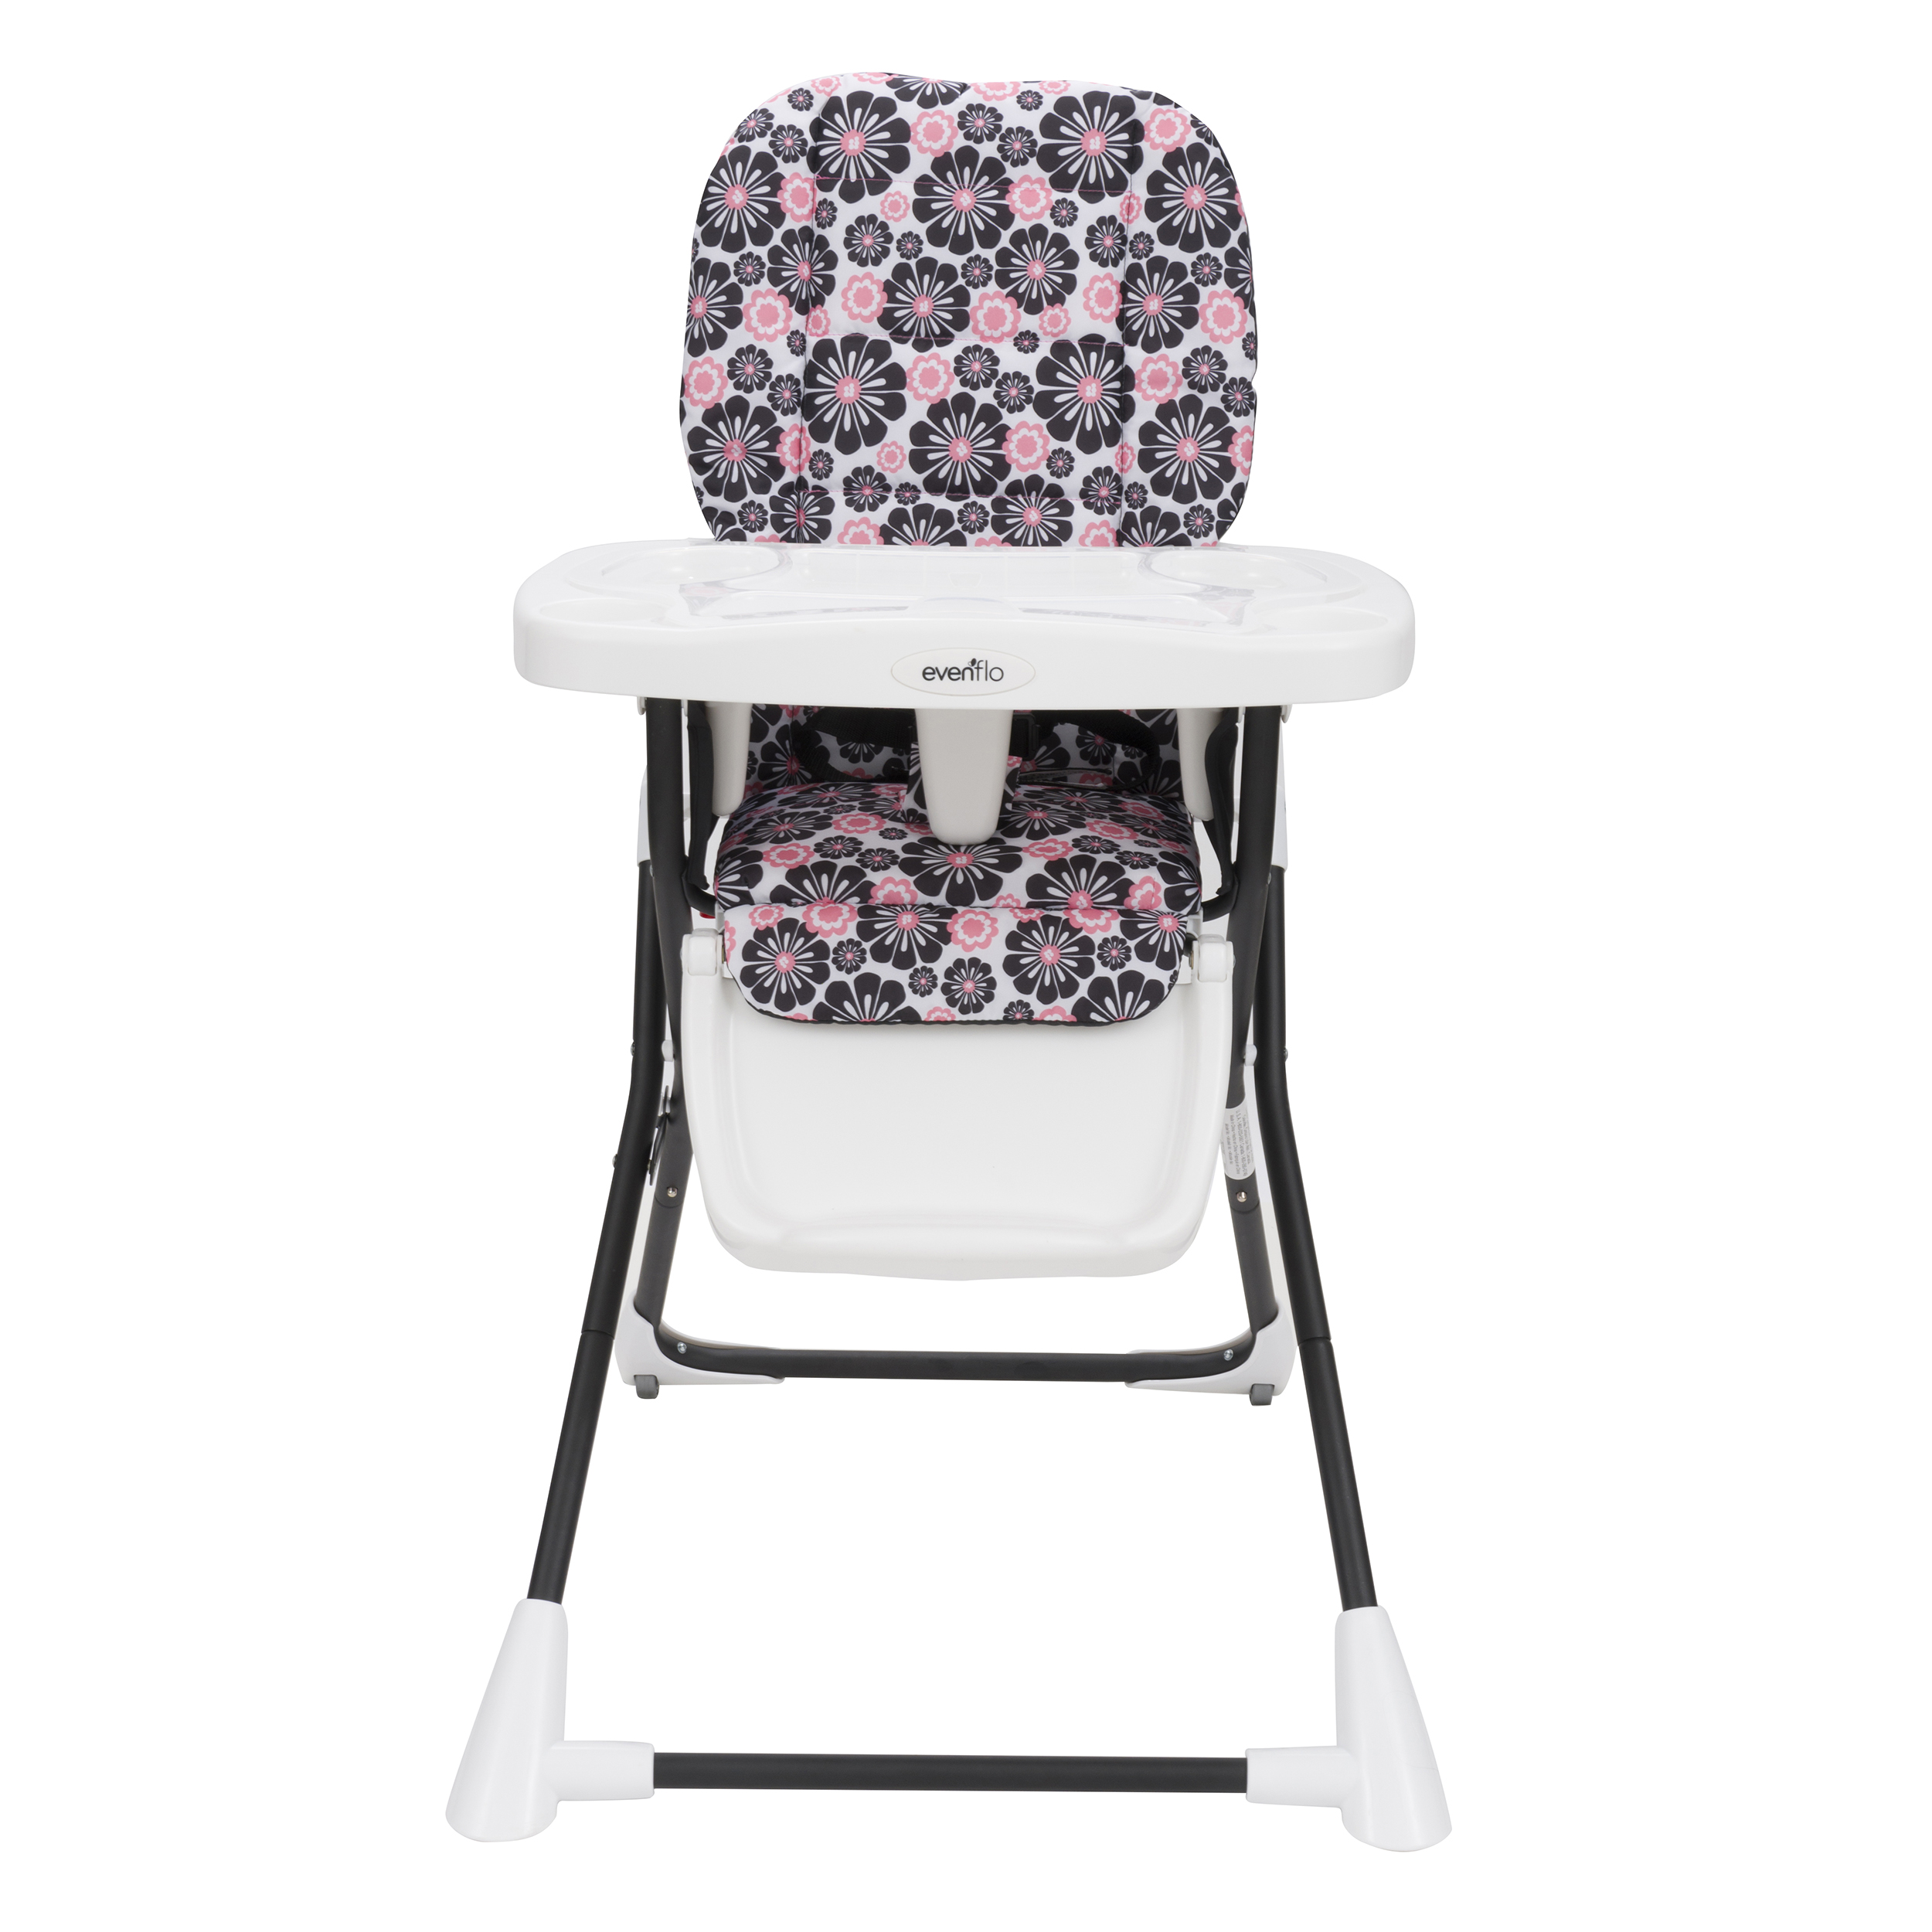 Evenflo Compact Fold High Chair Penelope  sc 1 st  Sears & Evenflo Compact Fold High Chair Penelope - Baby - Baby Gear - High ...